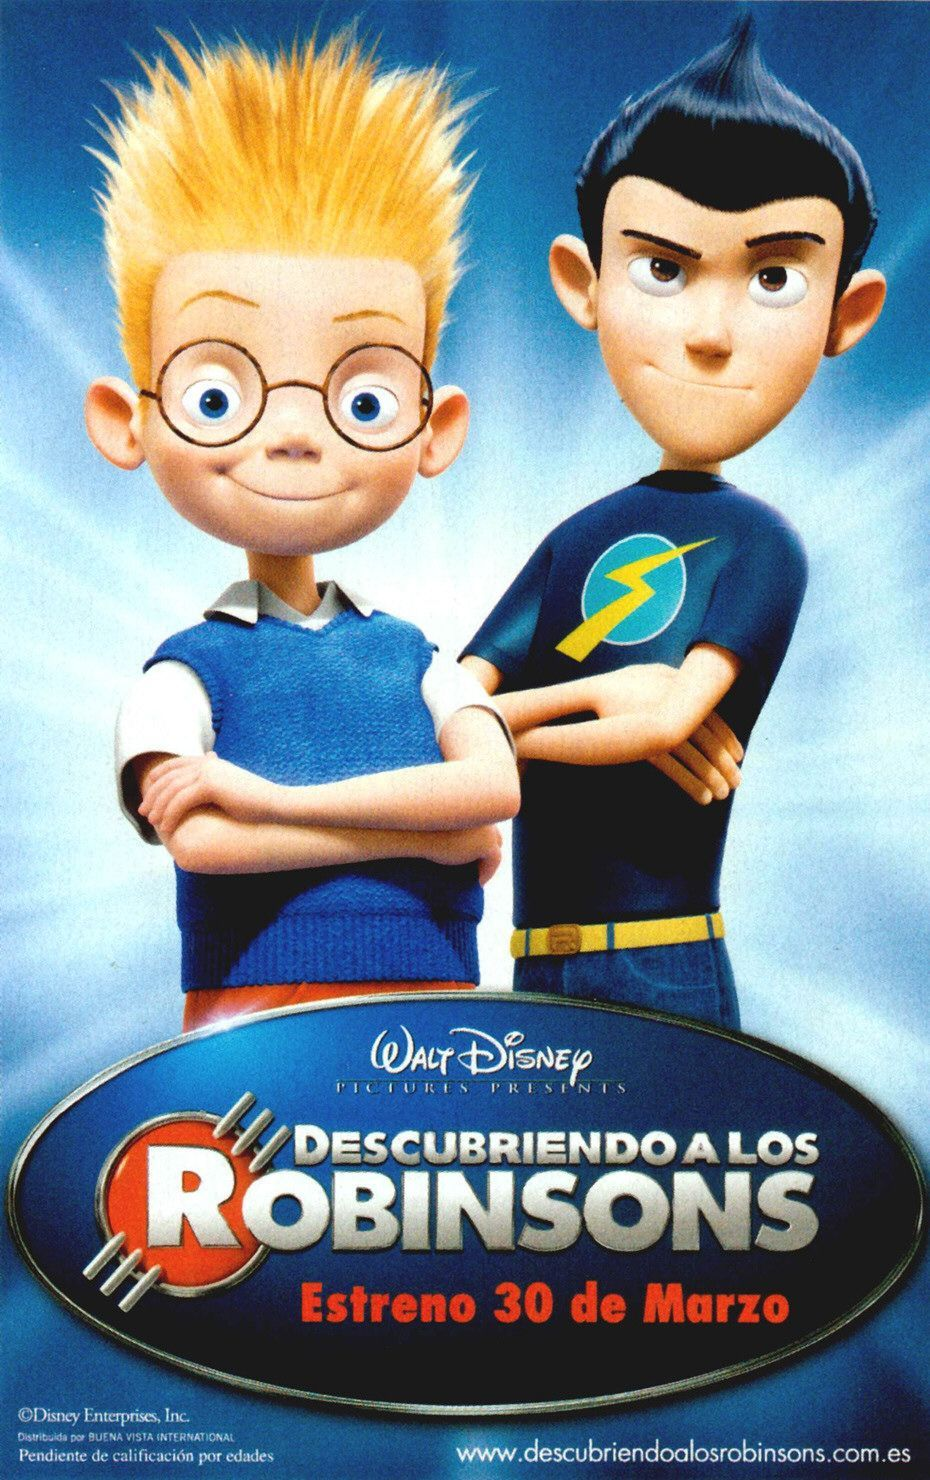 meet the robinsons starring daniel hansen wesley singerman